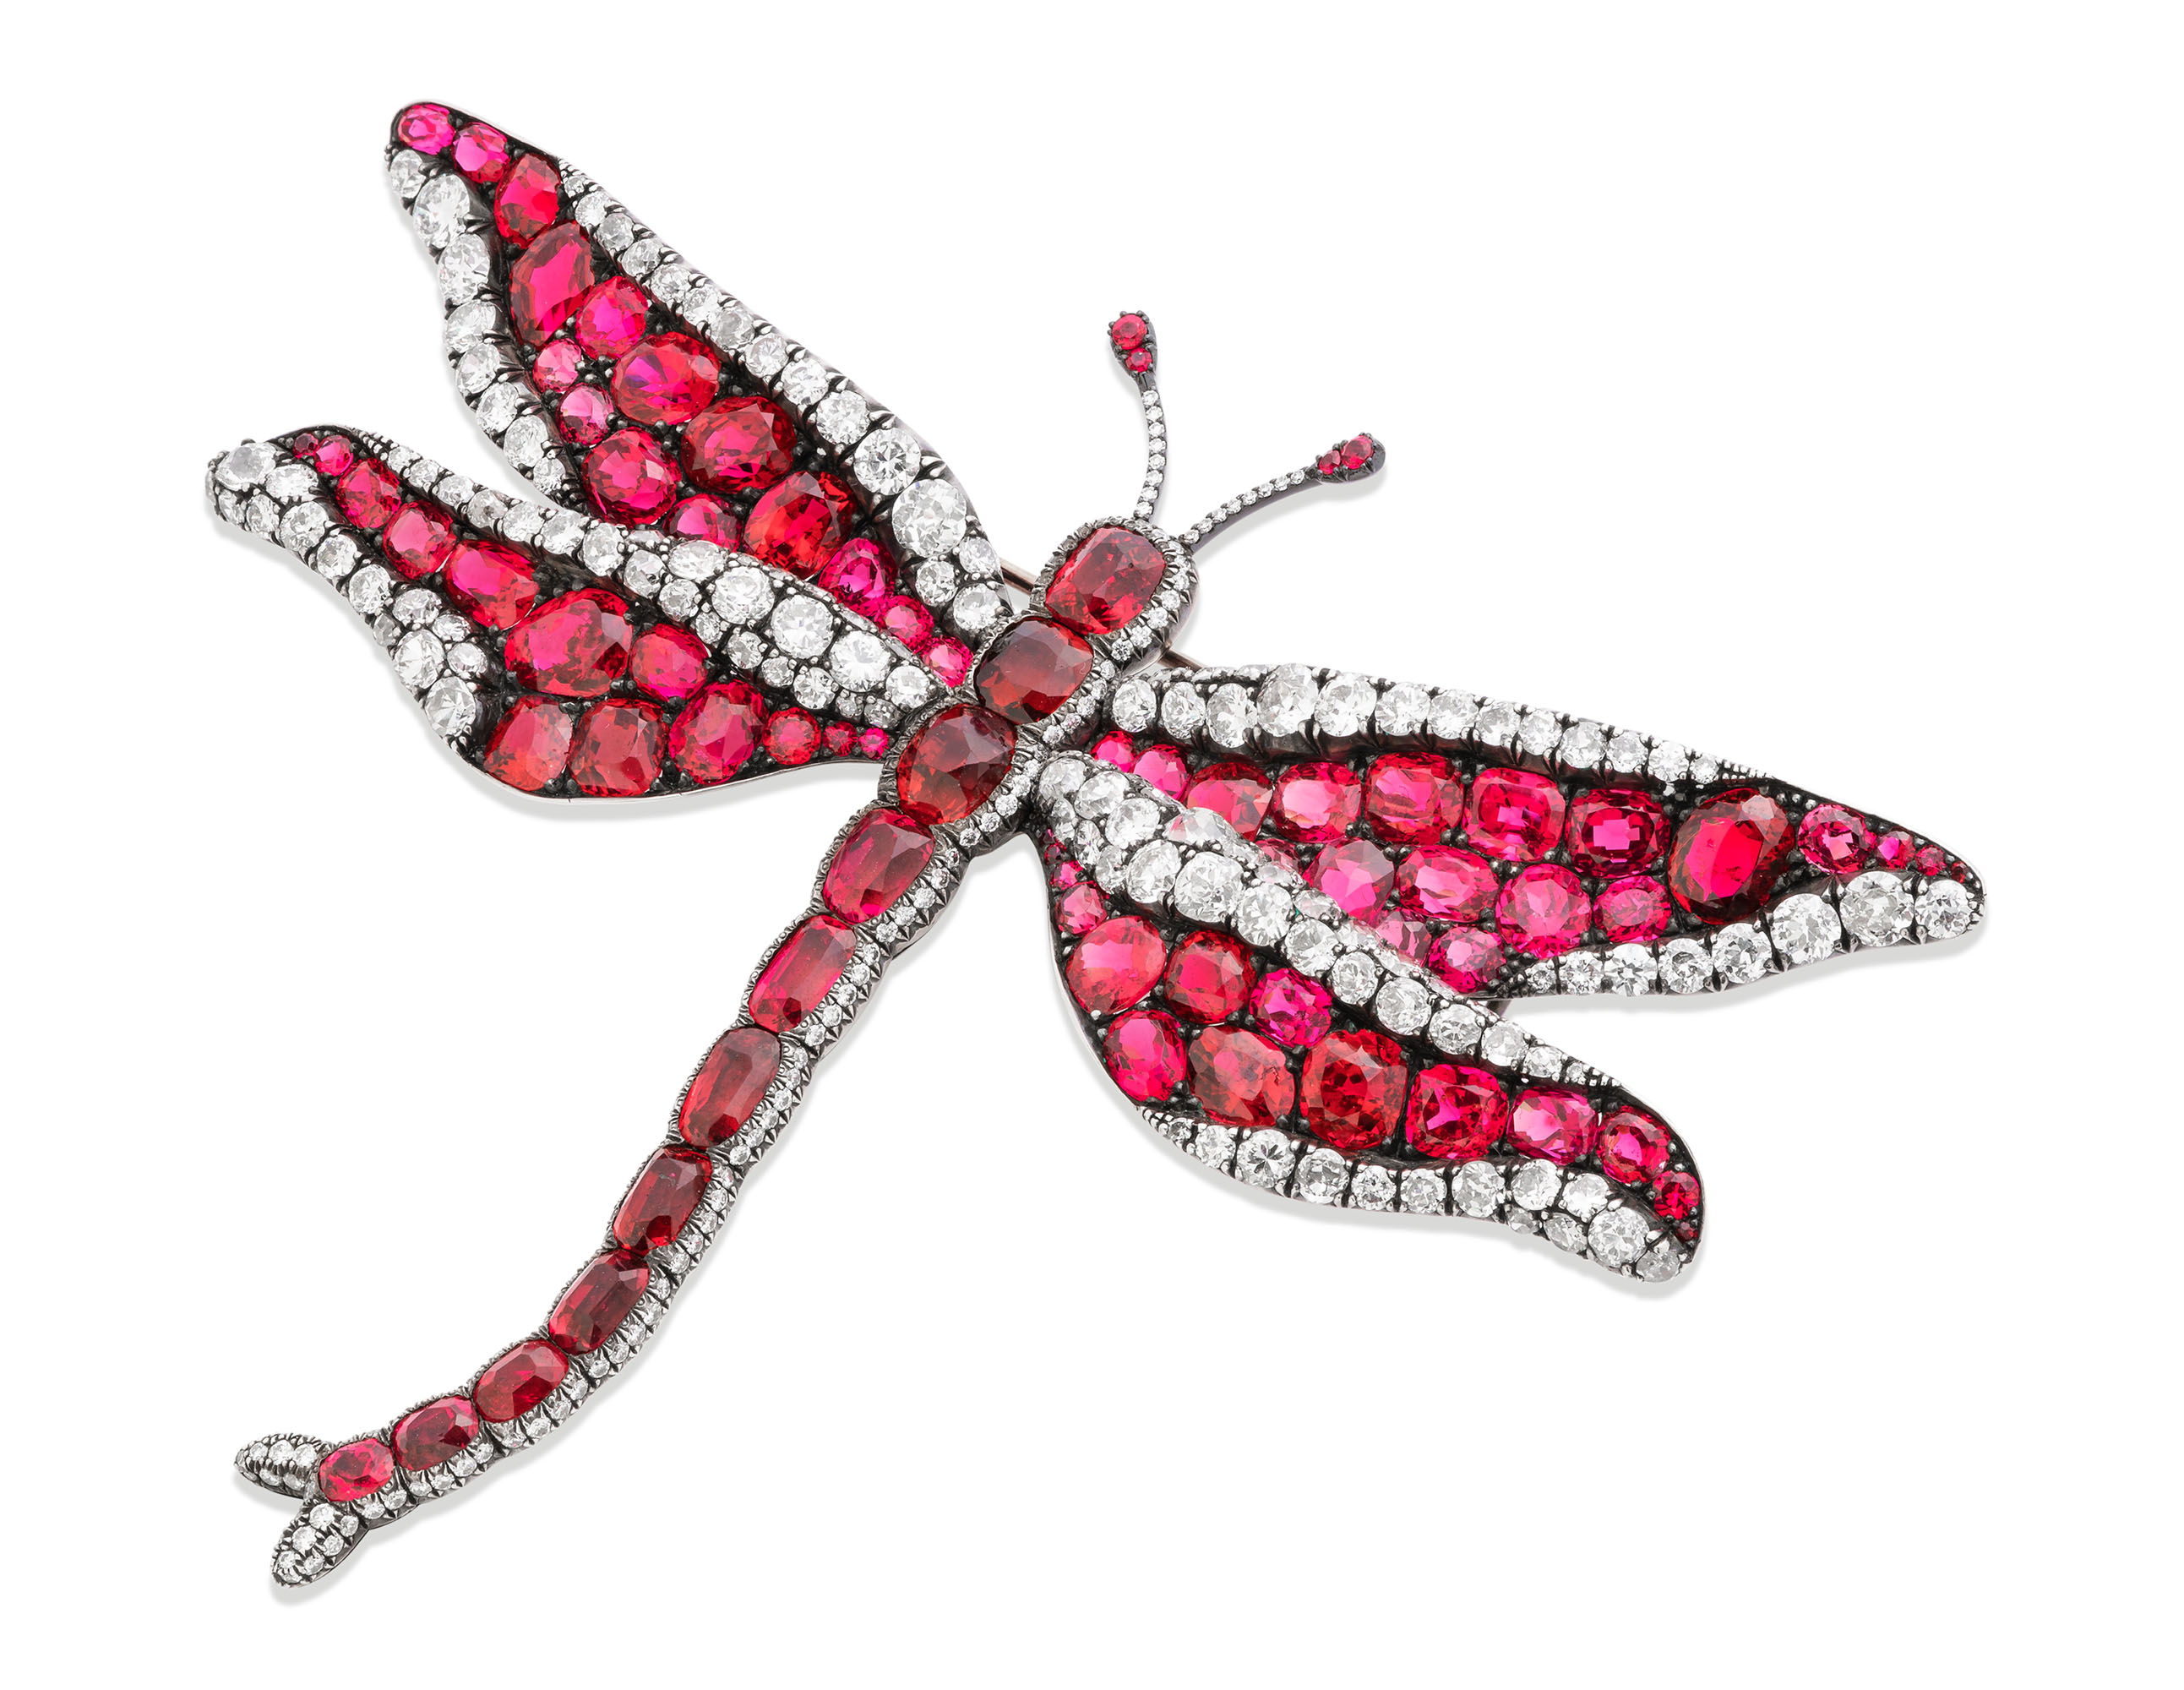 SPINEL AND DIAMOND BROOCH